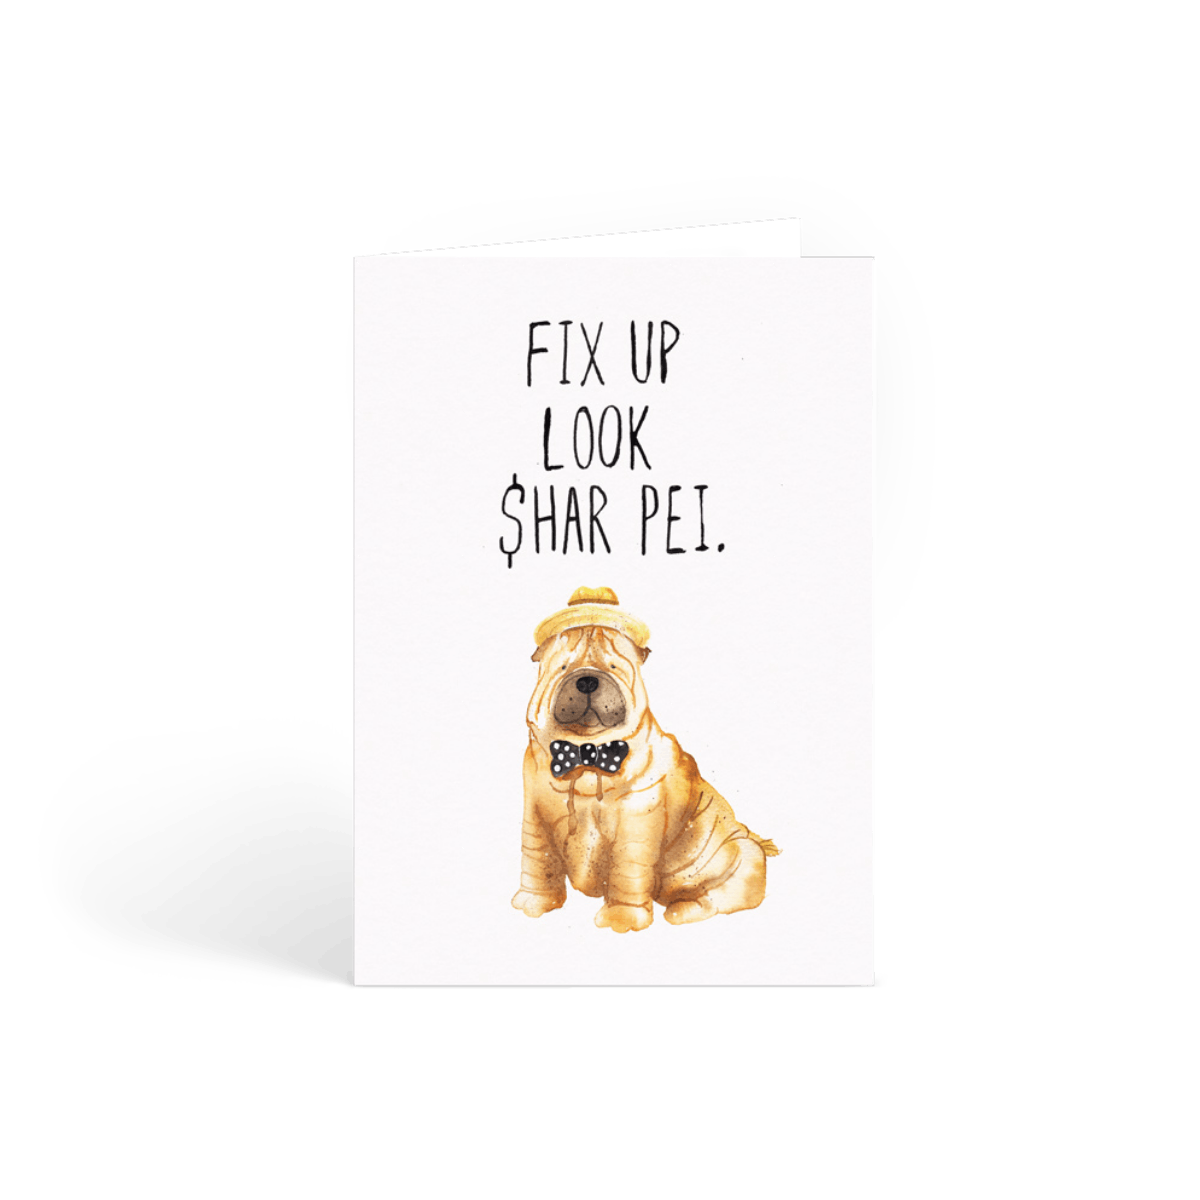 Https%3a%2f%2fwww.papier.com%2fproduct image%2f25214%2f2%2flook shar pei 6286 front 1499262463.png?ixlib=rb 1.1